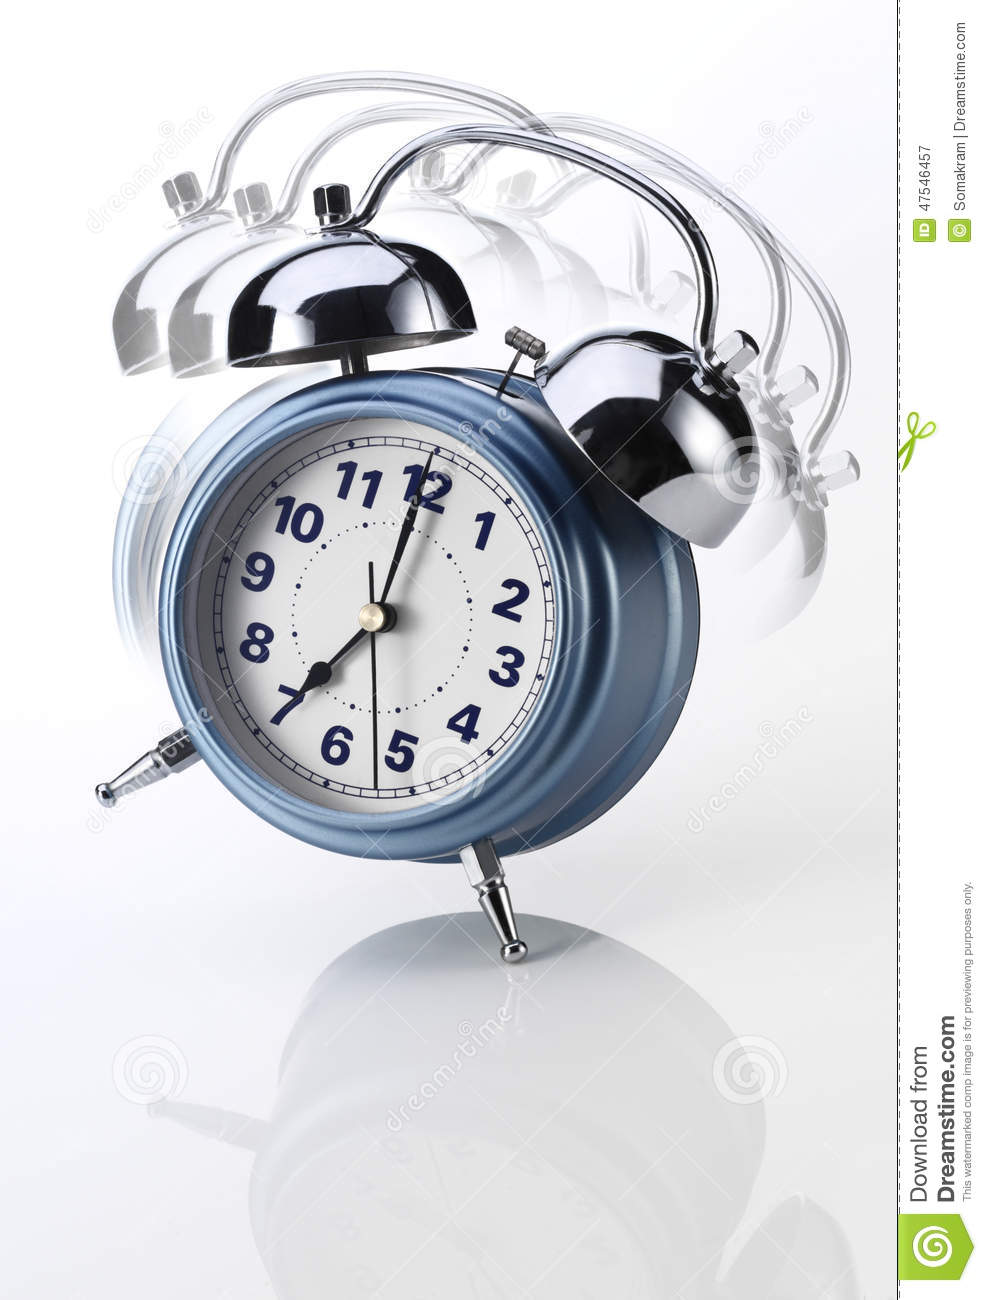 Download Alarm Clock stock image. Image of background, arise, time - 47546457